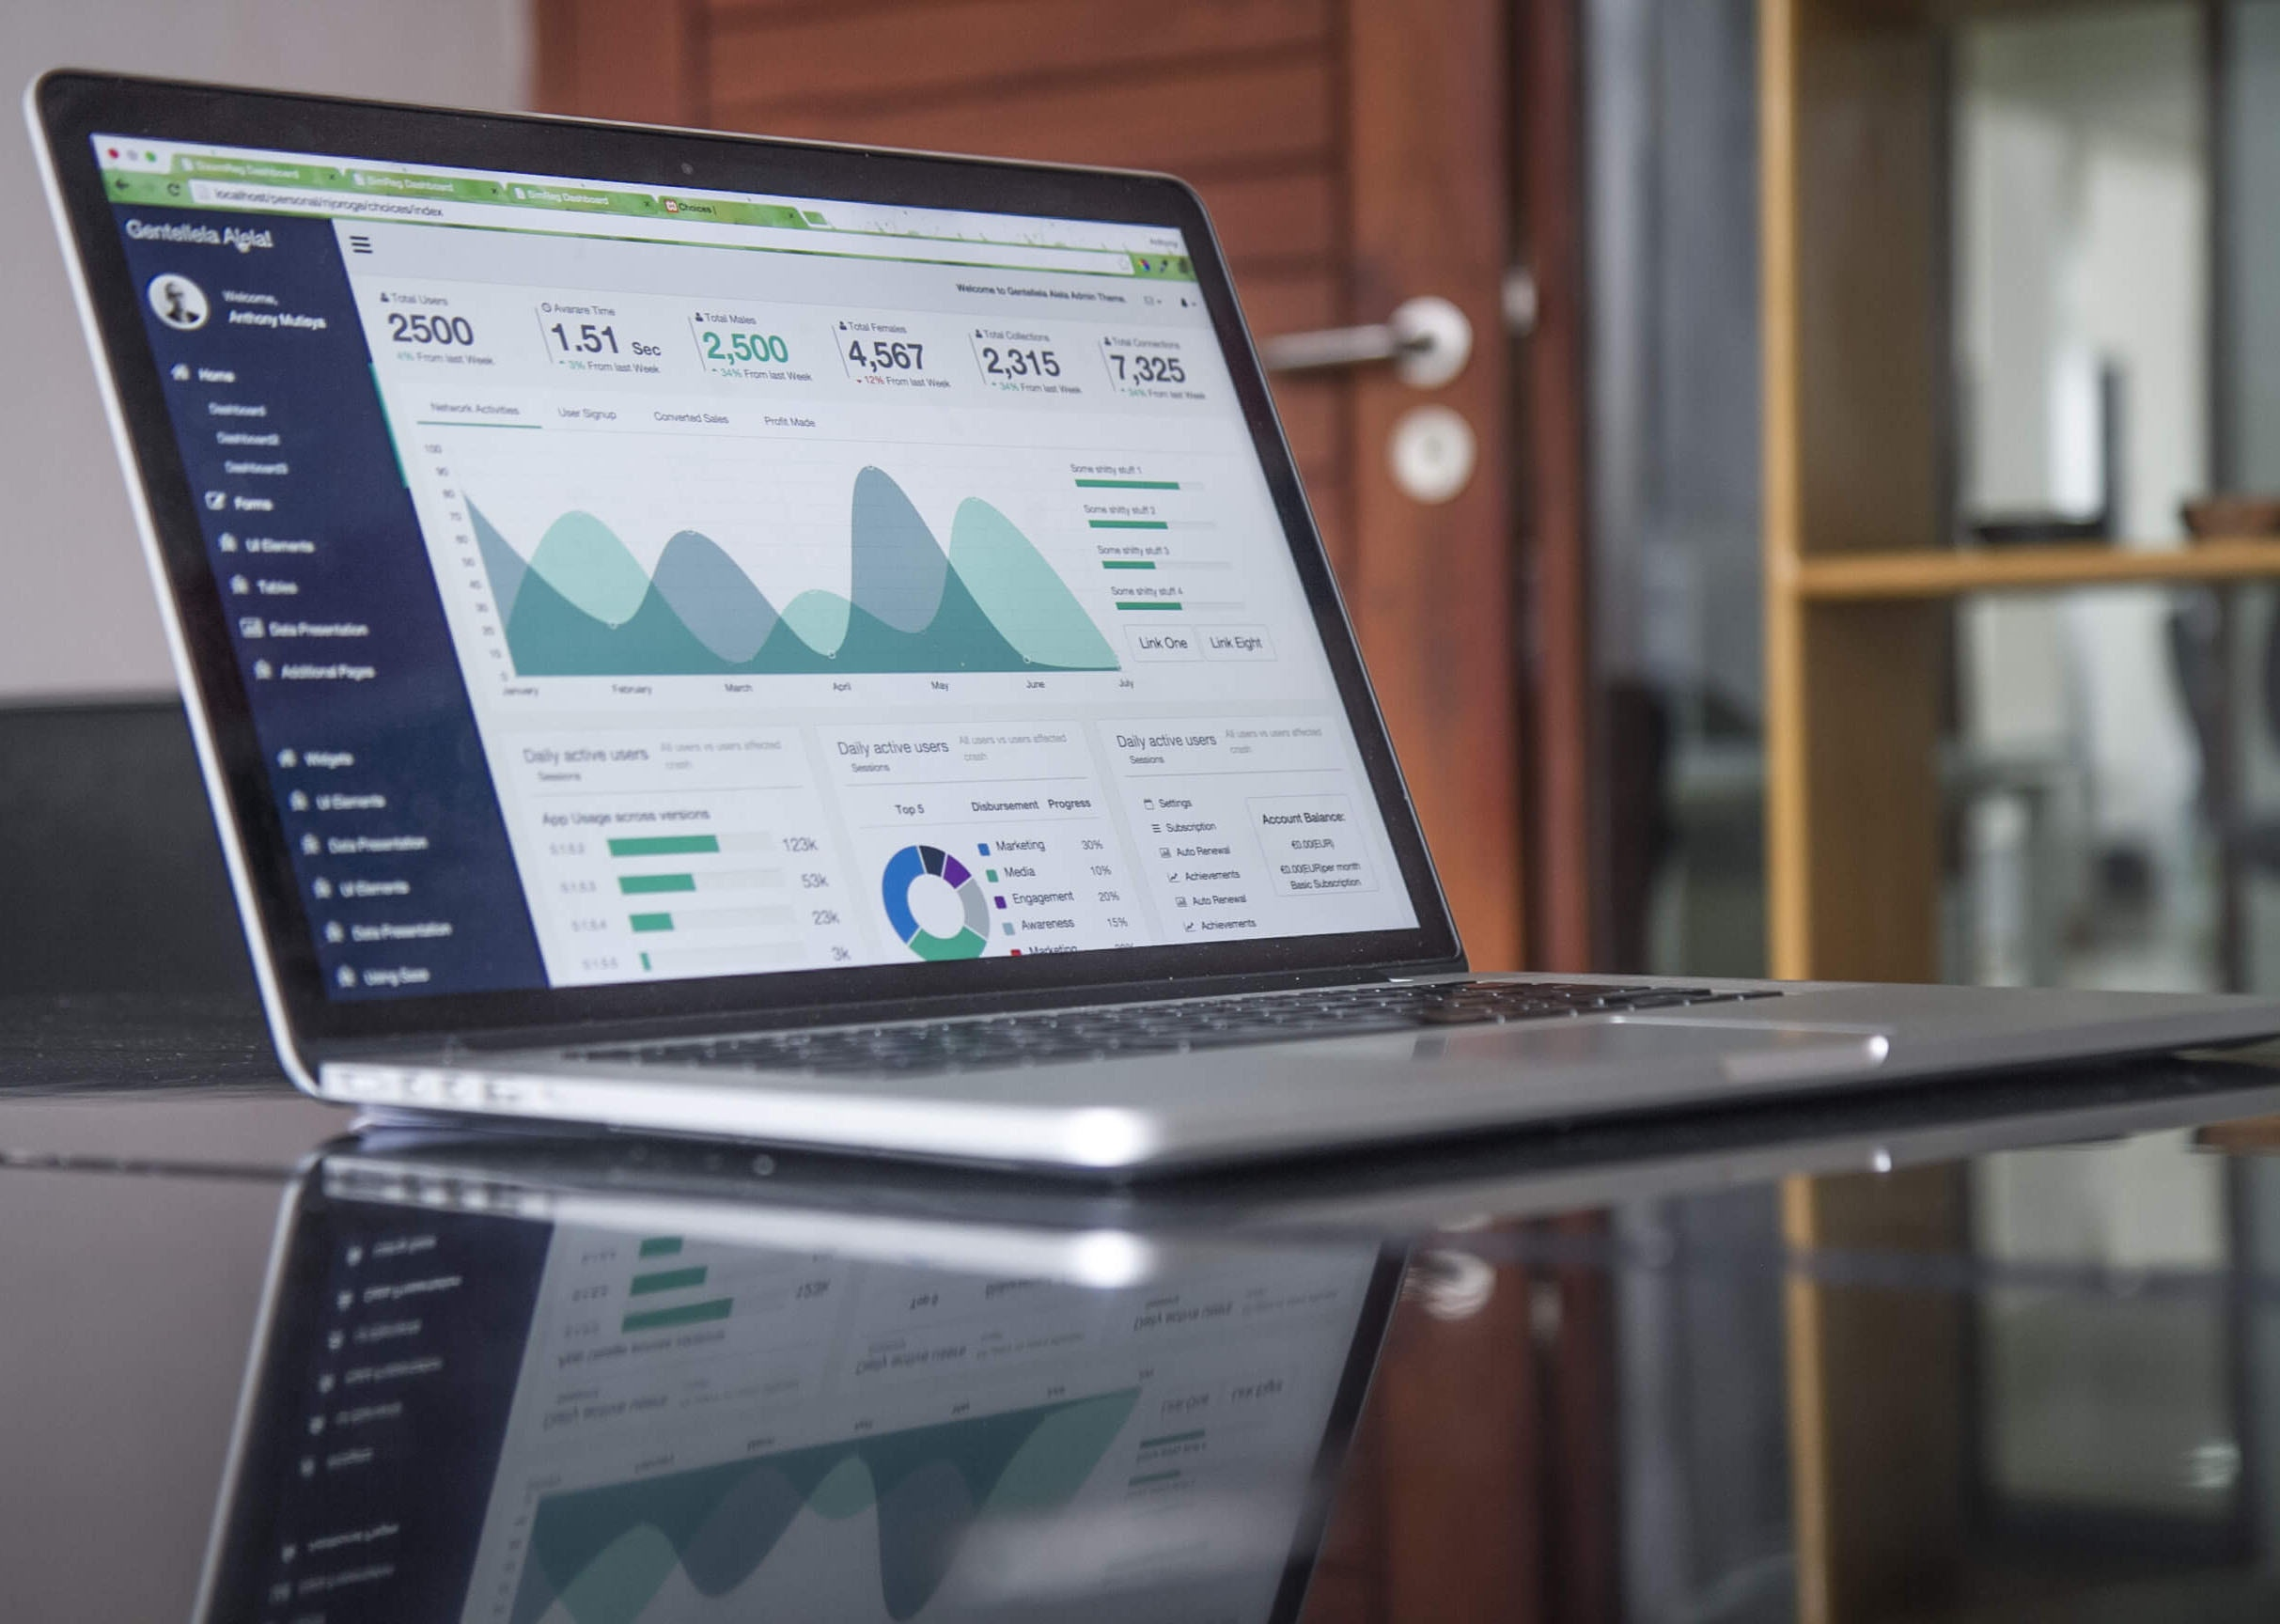 TURN DATA INTO KNOWLEDGE - With over 15 years of analytical digital media experience we know how to help you make sense of your data and turn it into useful knowledge.